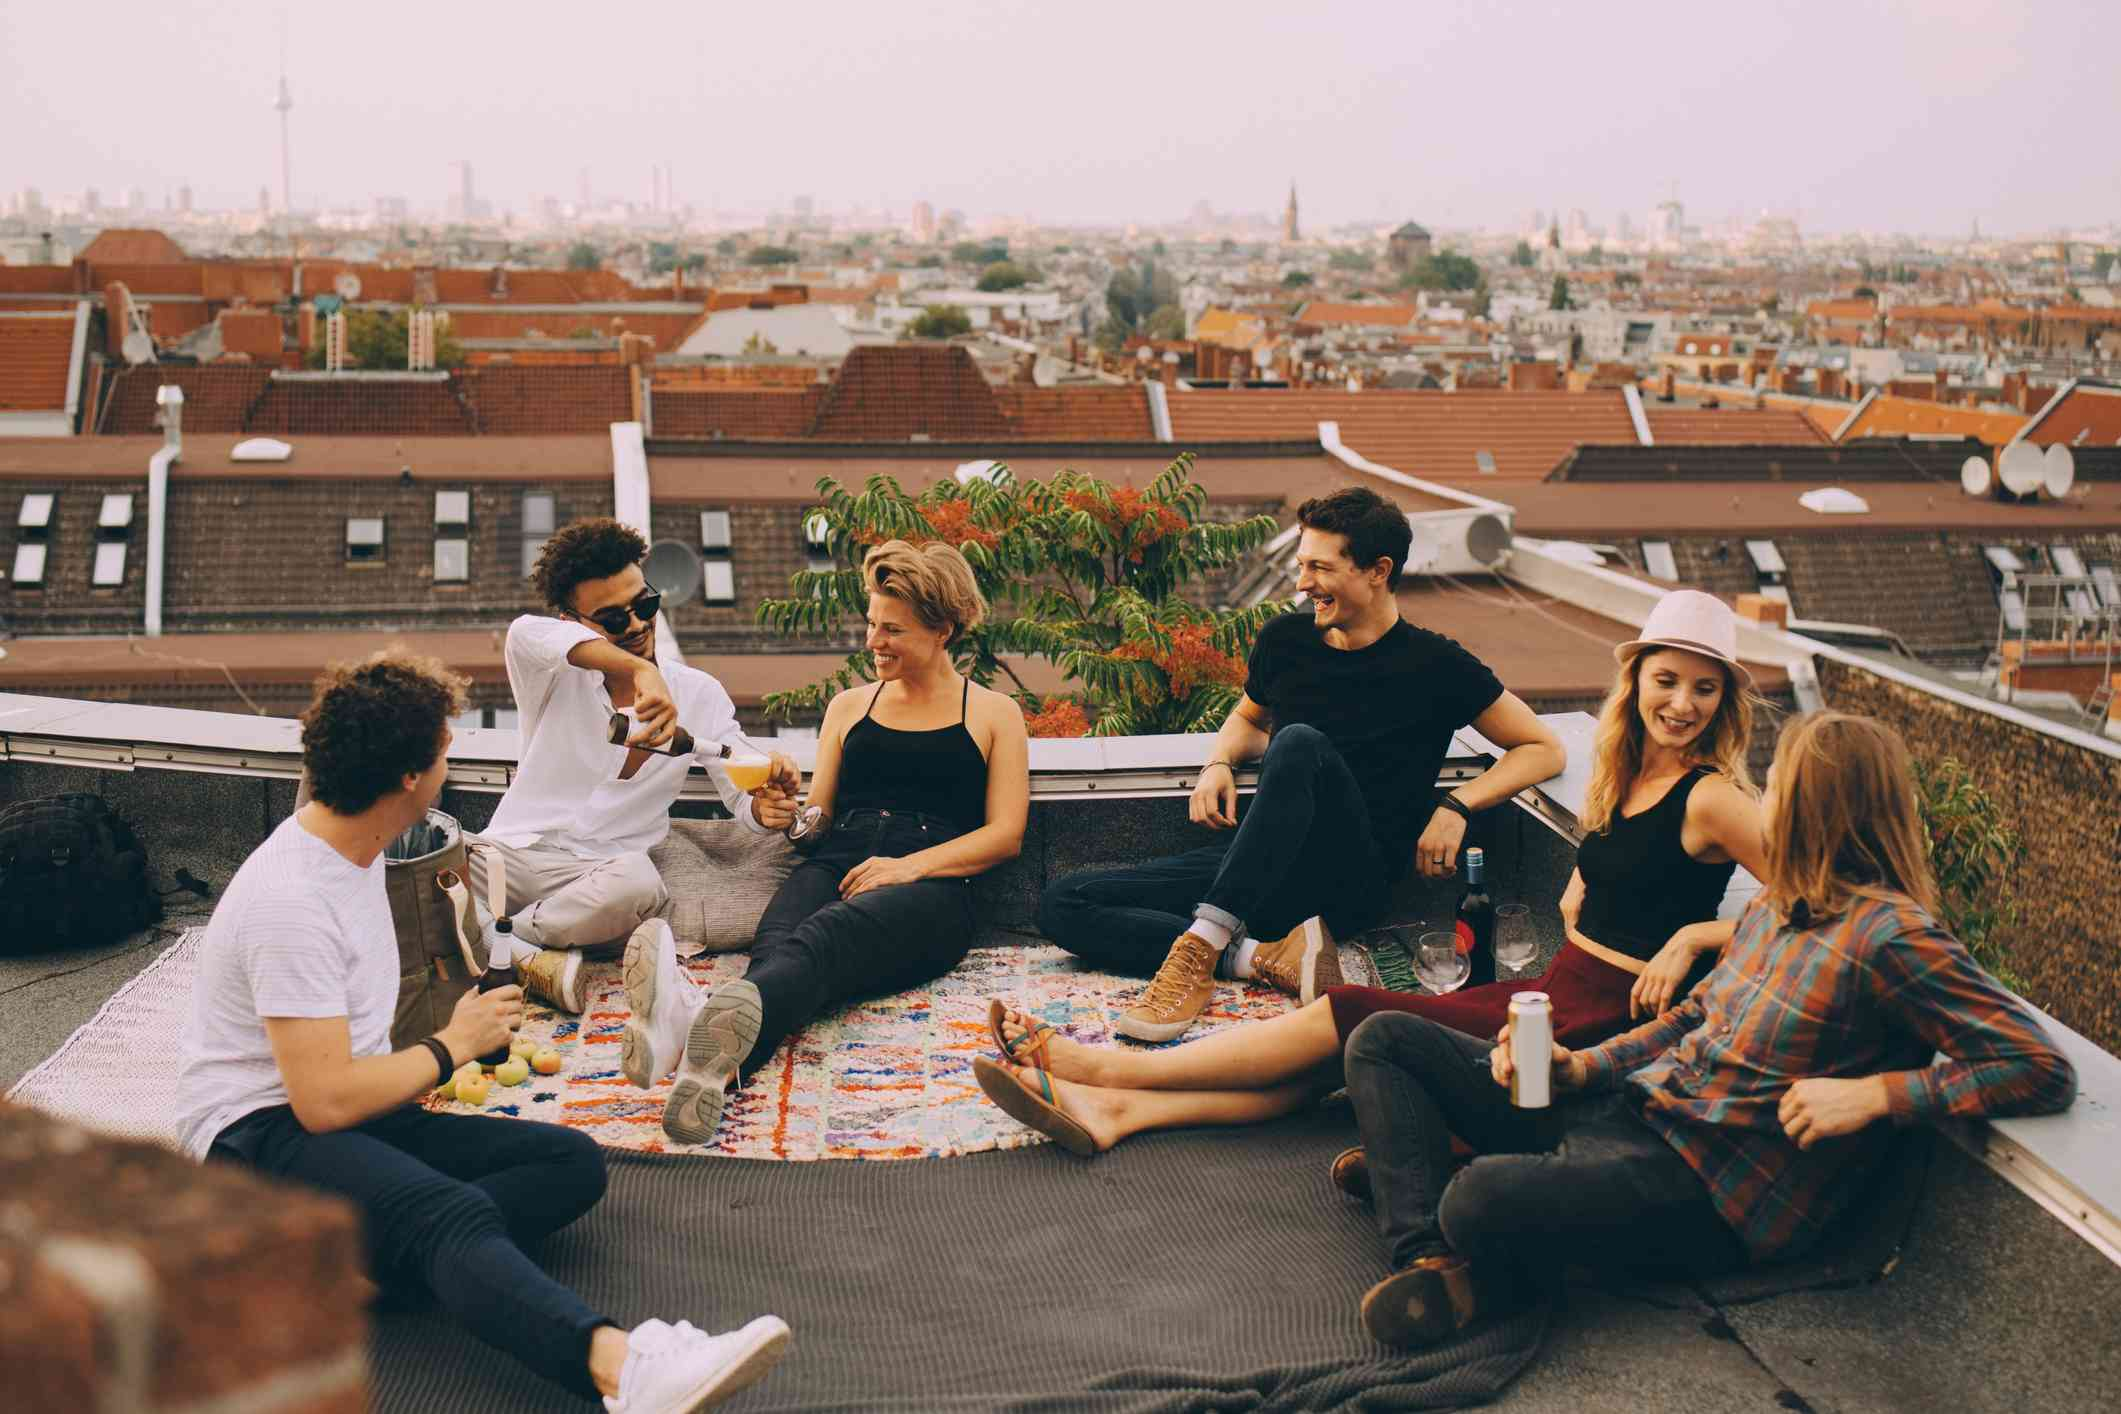 Group of friends hanging out on a roof